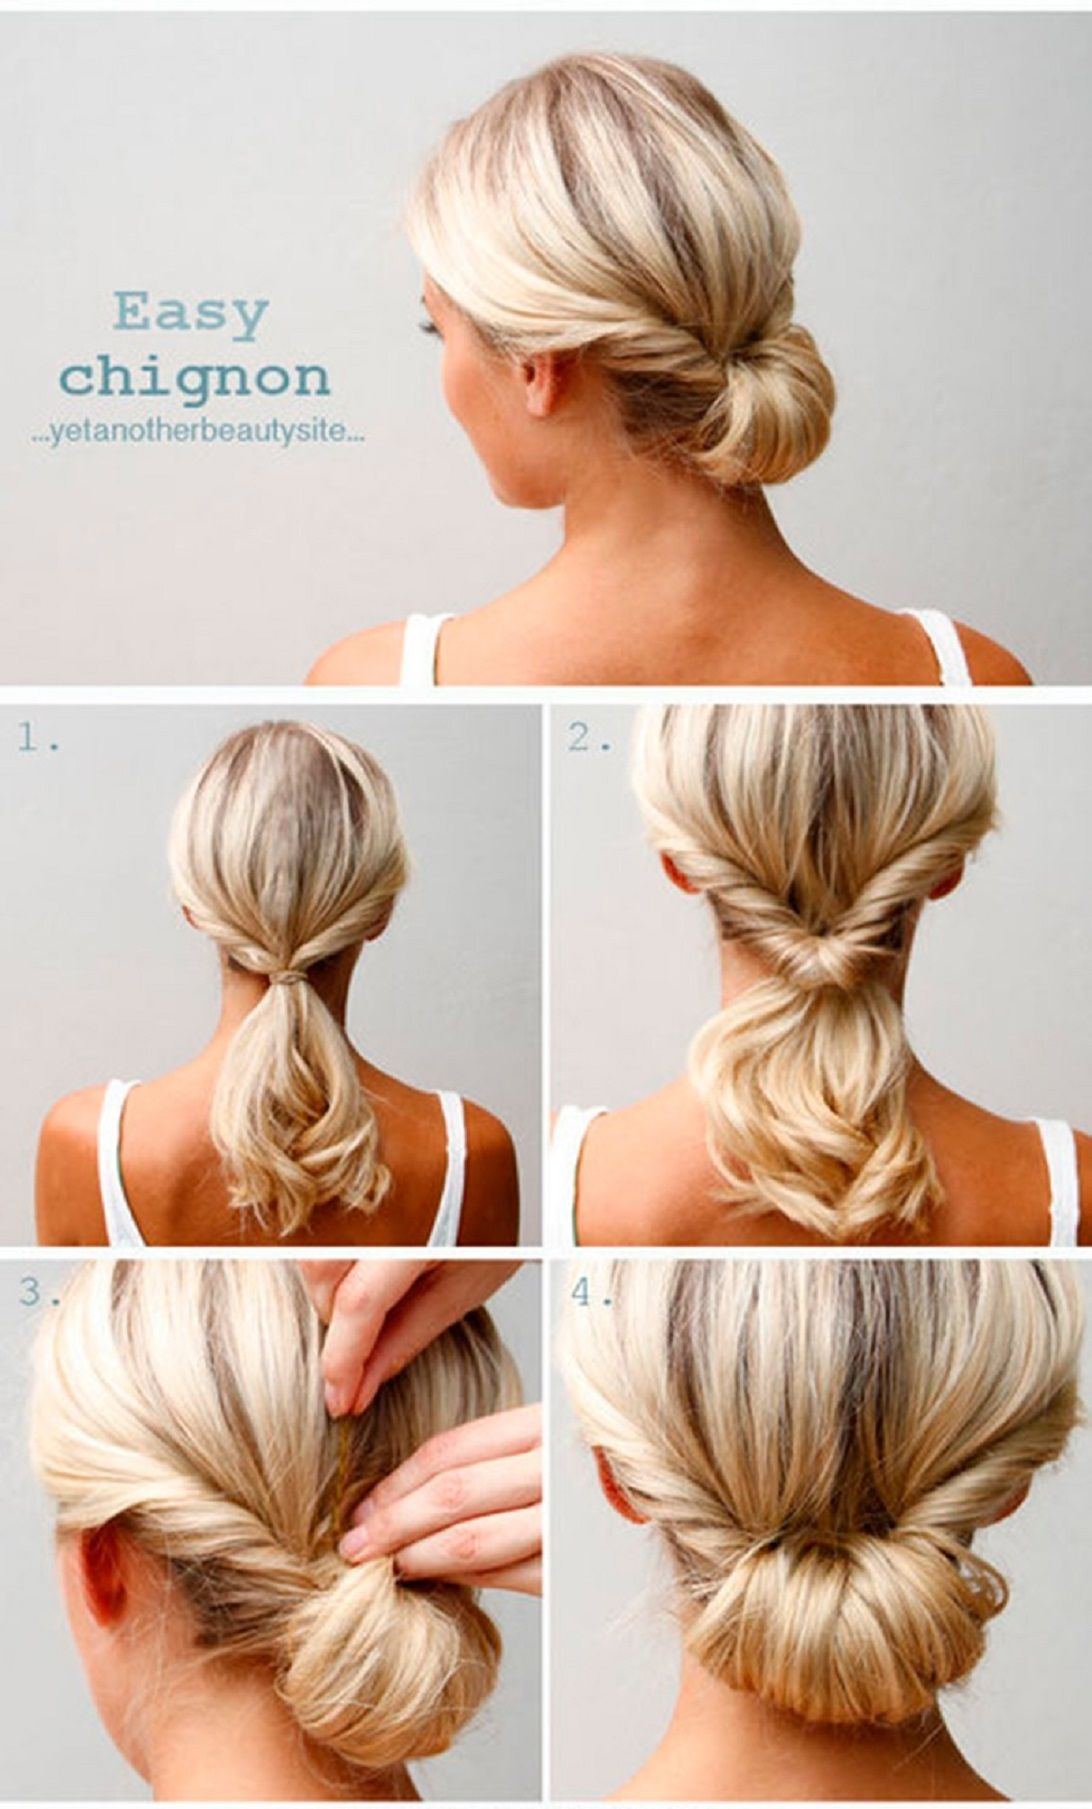 Check out this super quick and easy hairstyle beauty tips